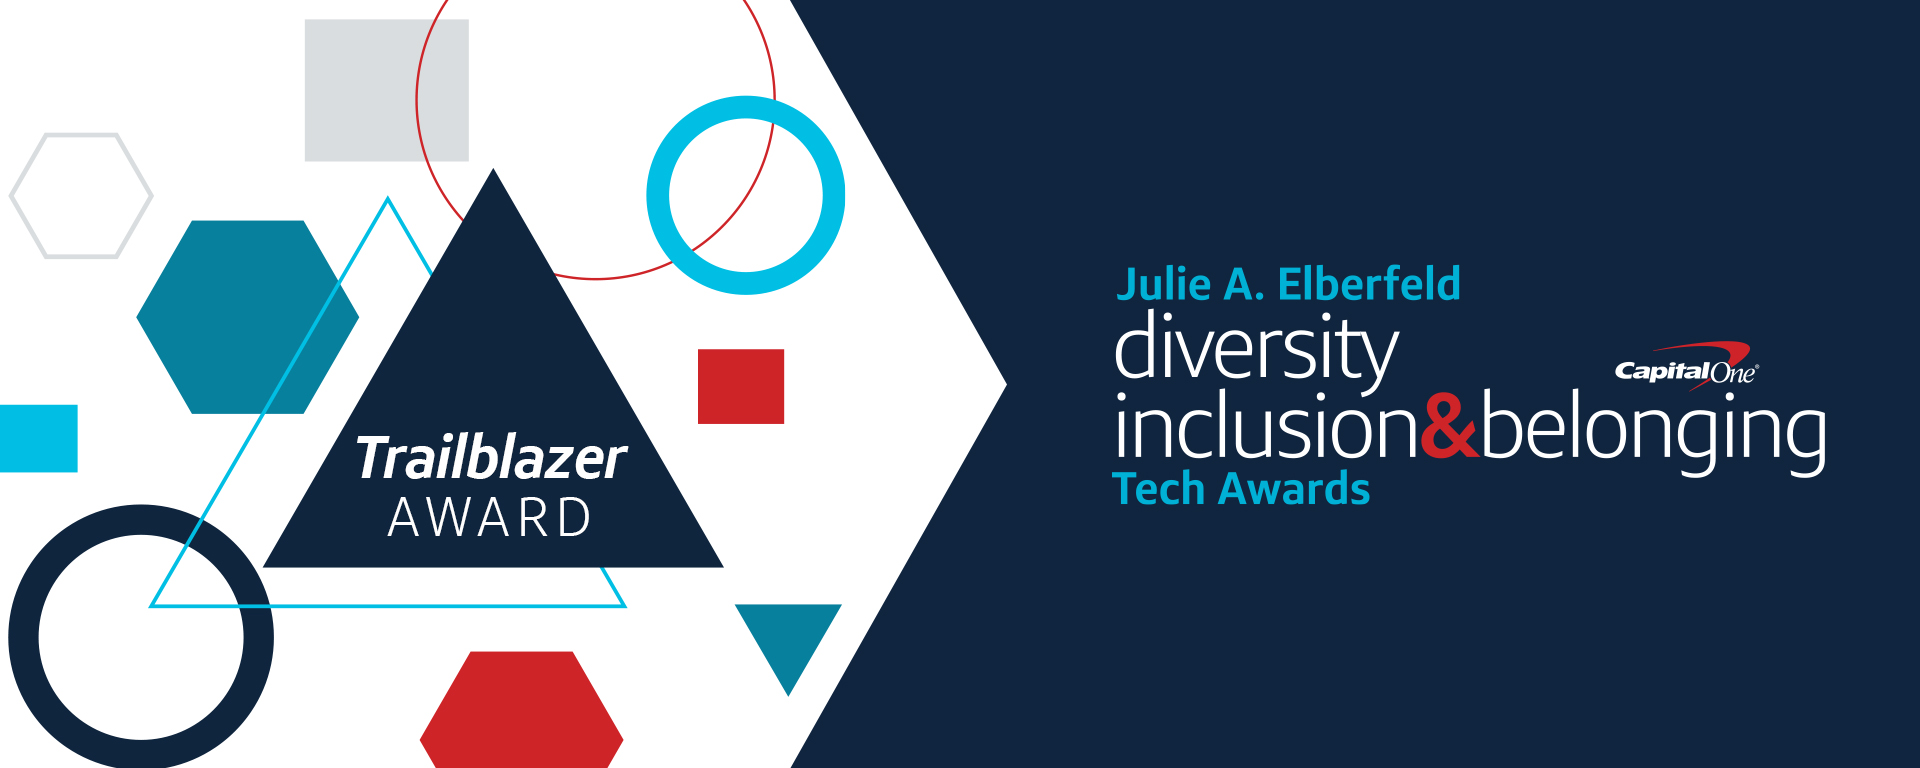 The Julie A. Elberfeld Tech Diversity, Inclusion and Belonging Awards Trailblazer Award celebrates inclusion in Tech